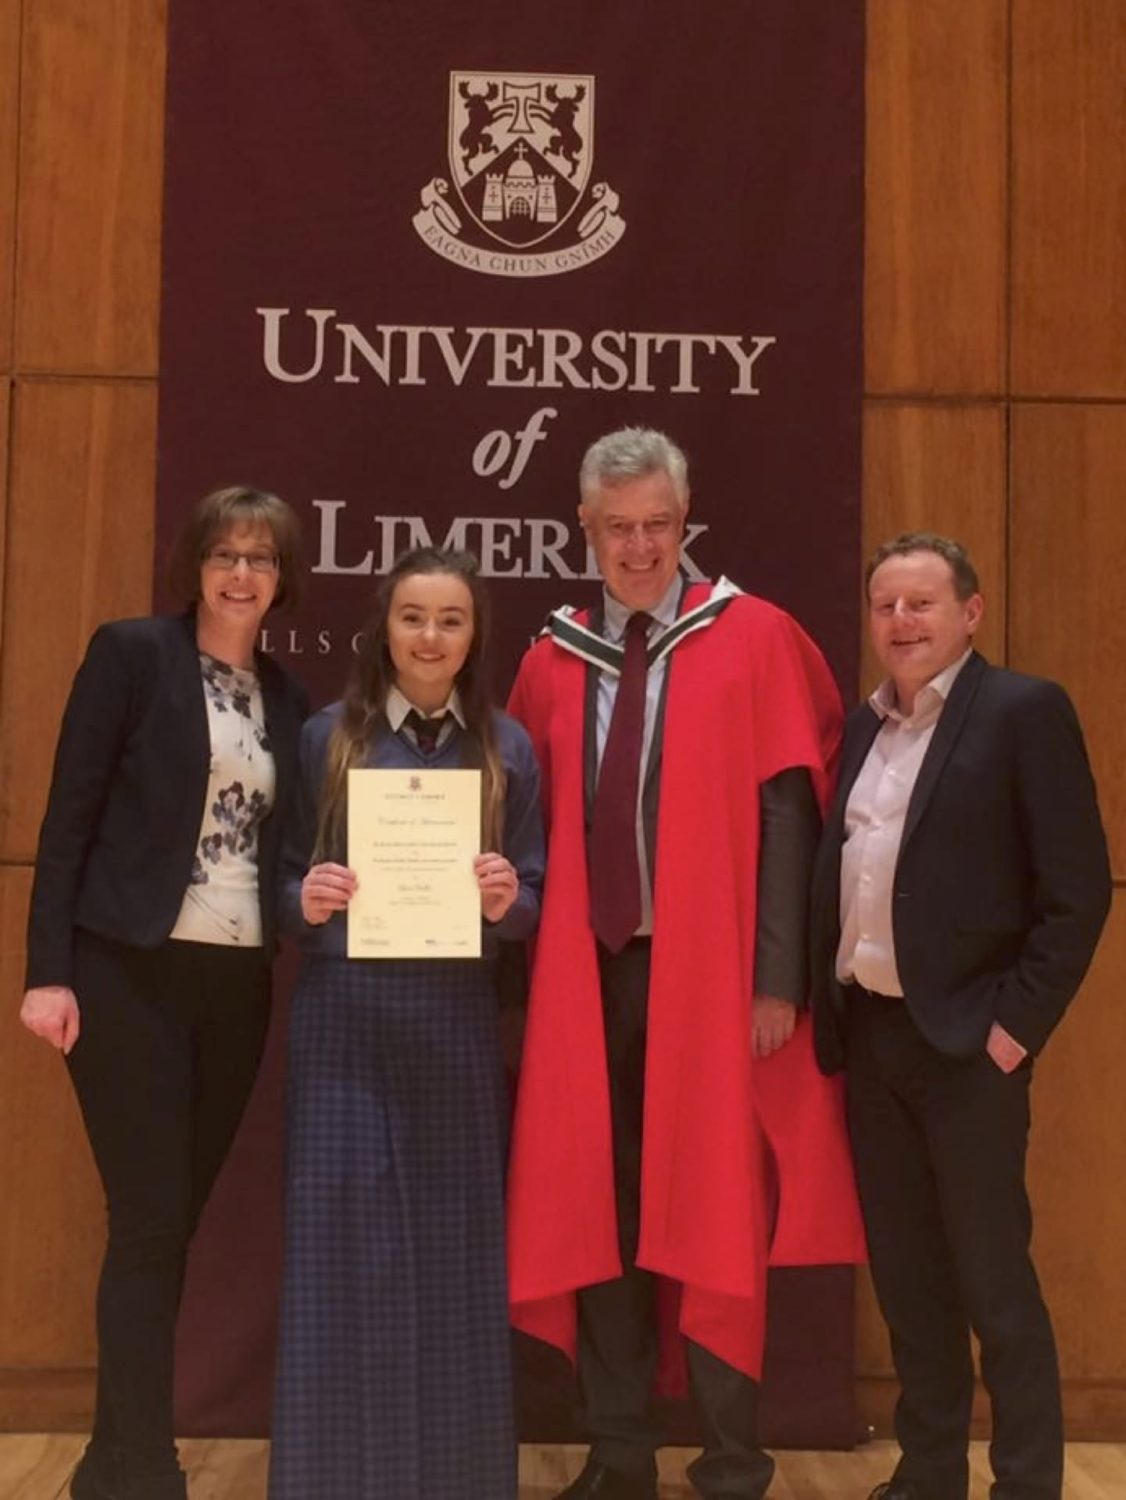 March 2017: Alice Duffy TY student in Desmond College is pictured with her Mam and Dad receiving a Certificate from Philip O Regan, Dean of the Kemmy Business School at the University of Limerick